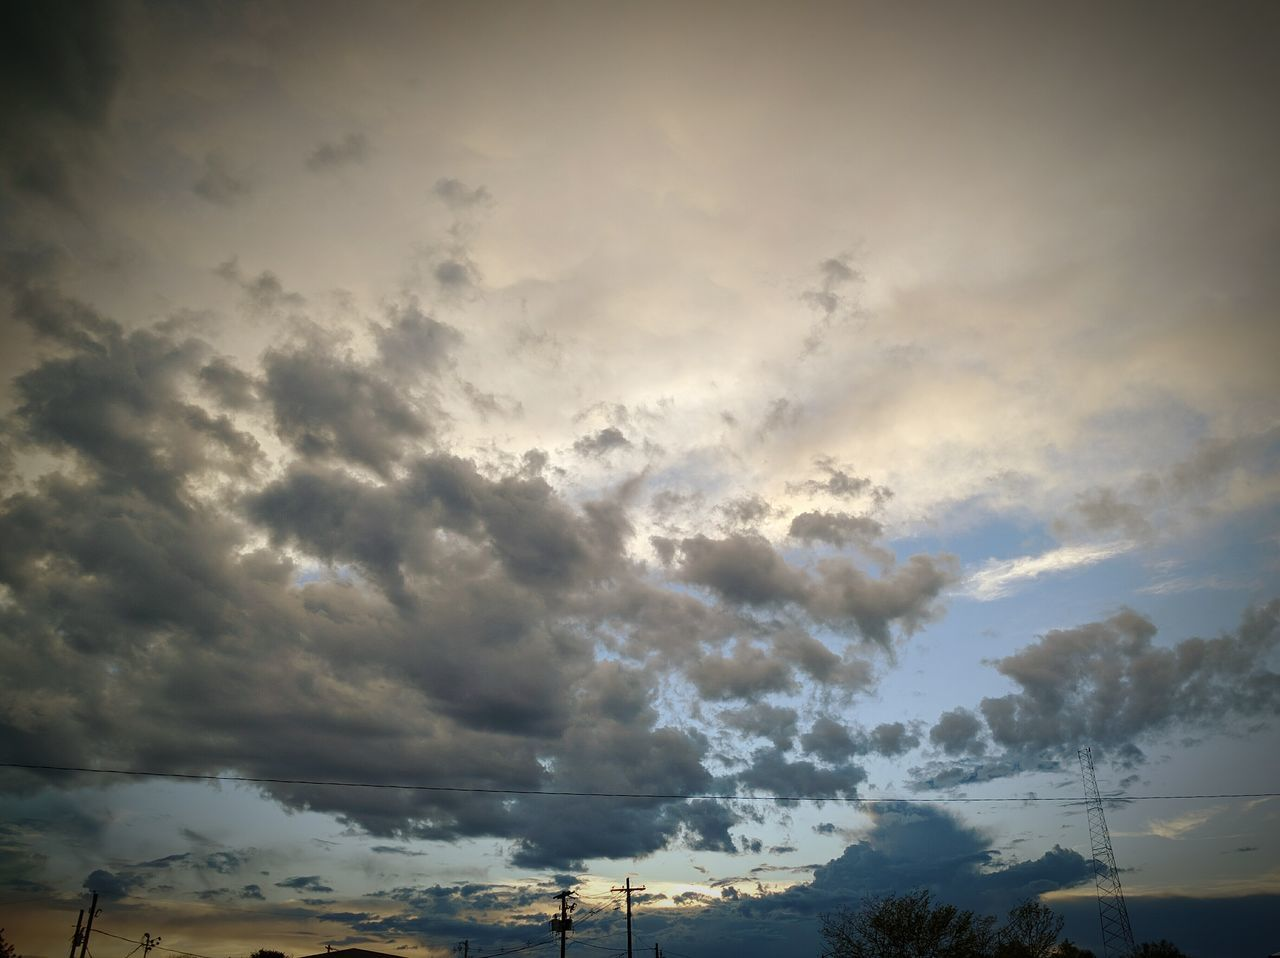 cloud - sky, sky, beauty in nature, scenics, nature, no people, dramatic sky, tranquil scene, tranquility, sunset, outdoors, low angle view, day, storm cloud